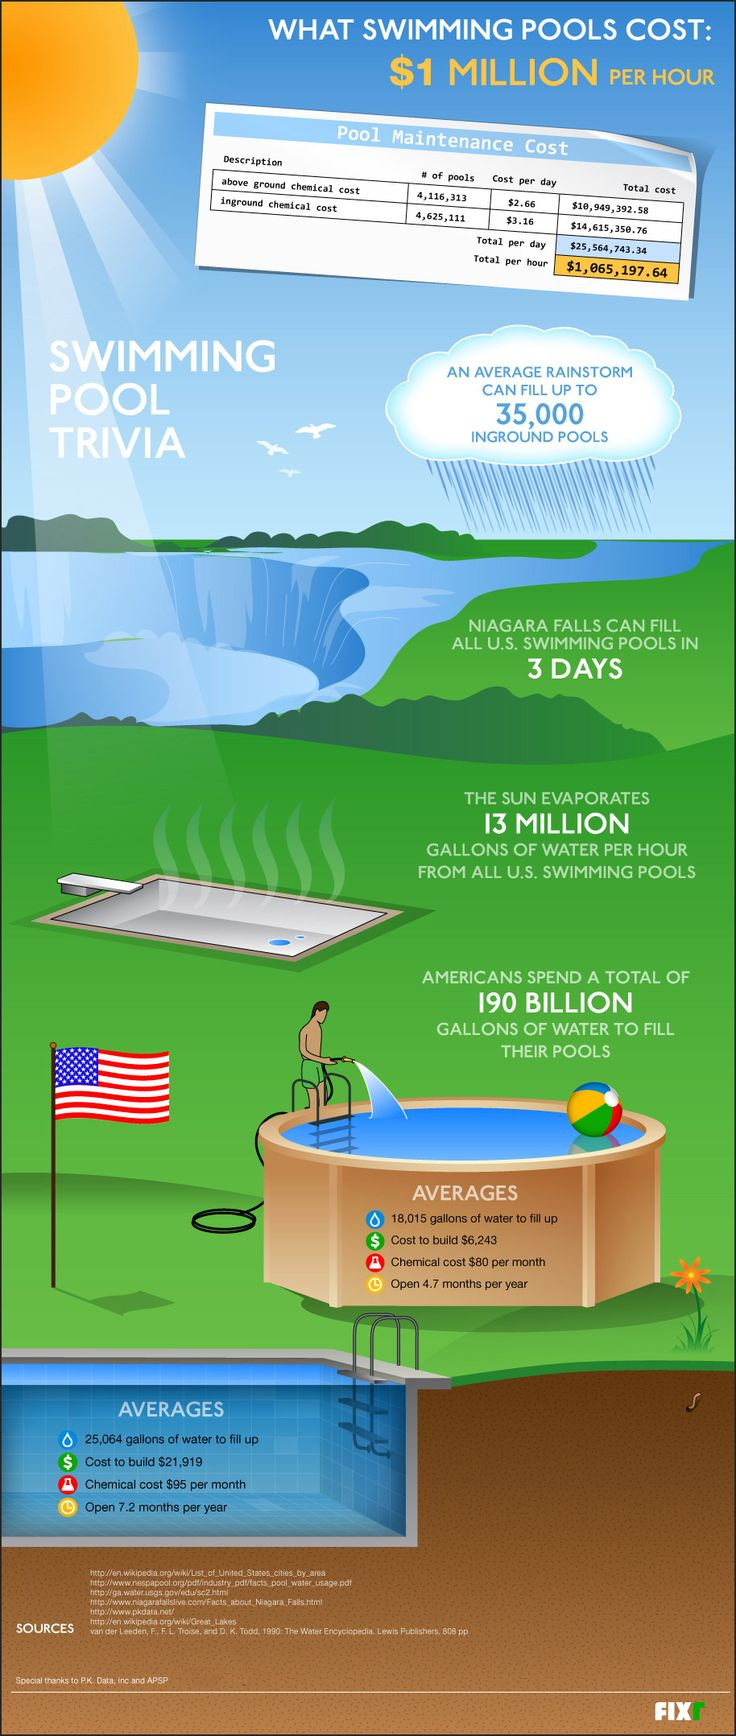 This infographic provides information for swimming pools such as the cost and maintenance requirements. It illustrates how expenses swimming pools are